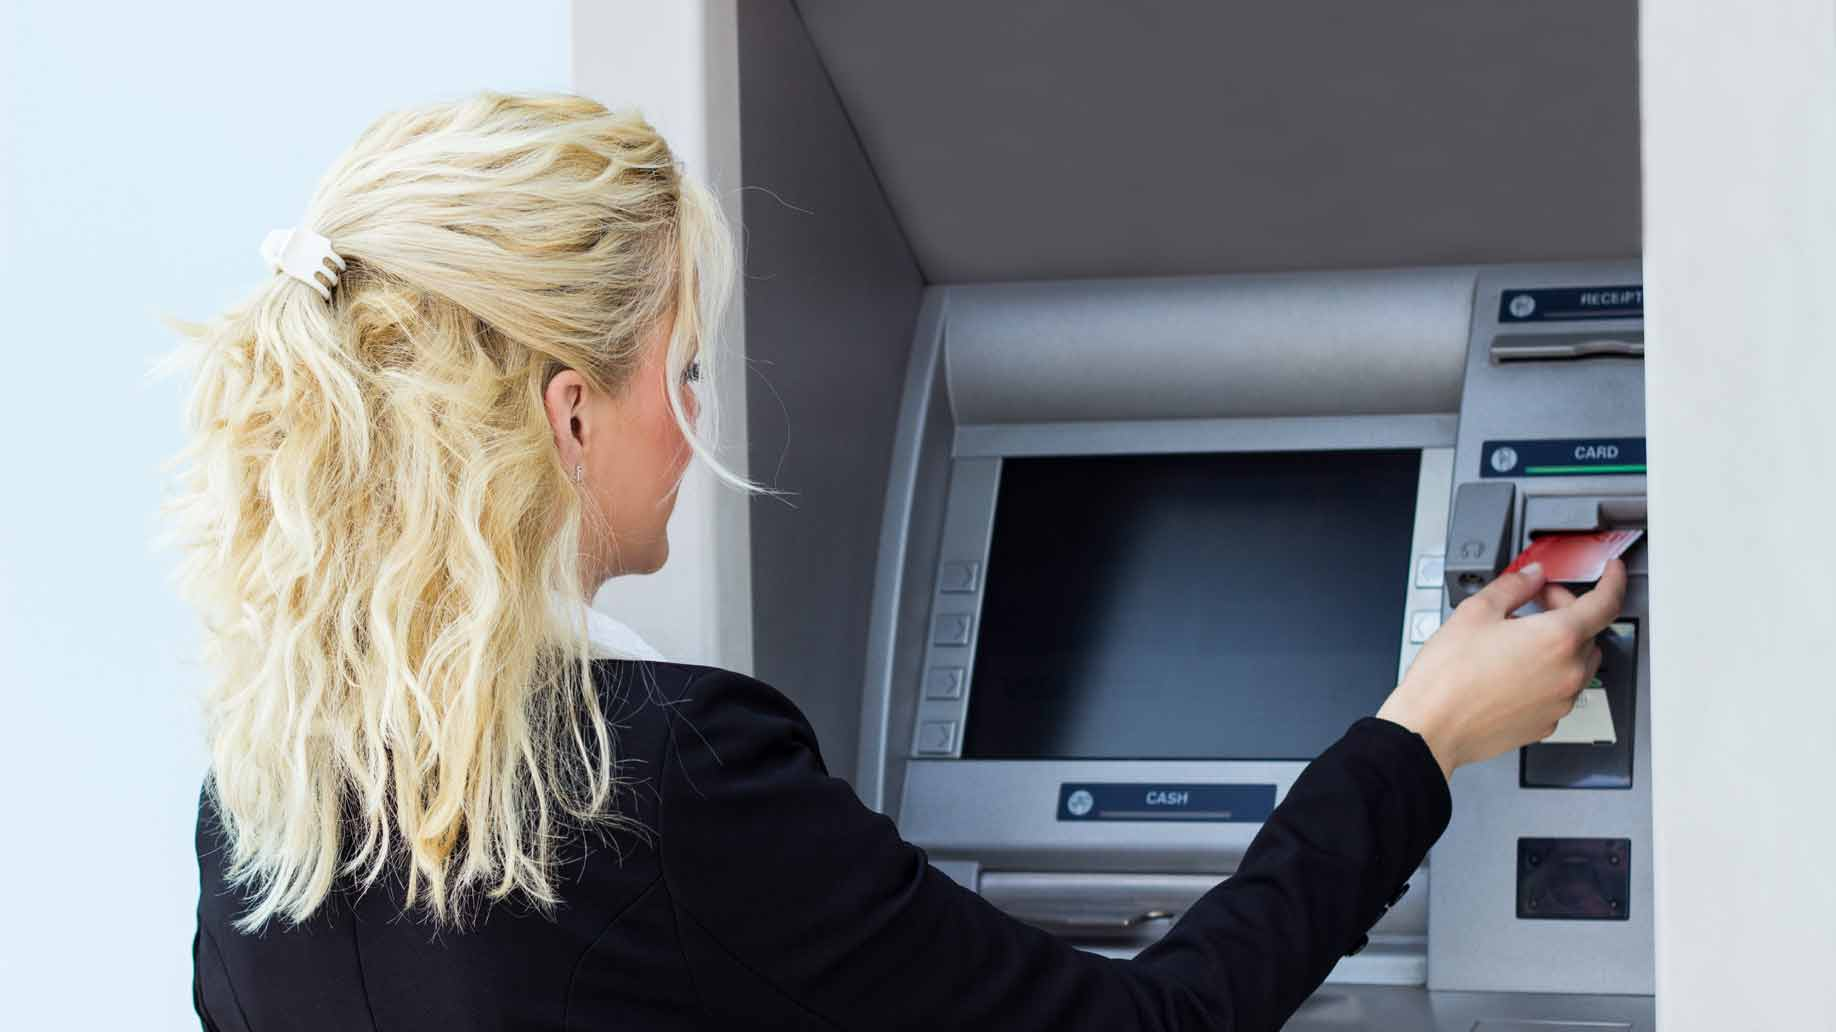 using an atm machine to avoid excessive transaction fees